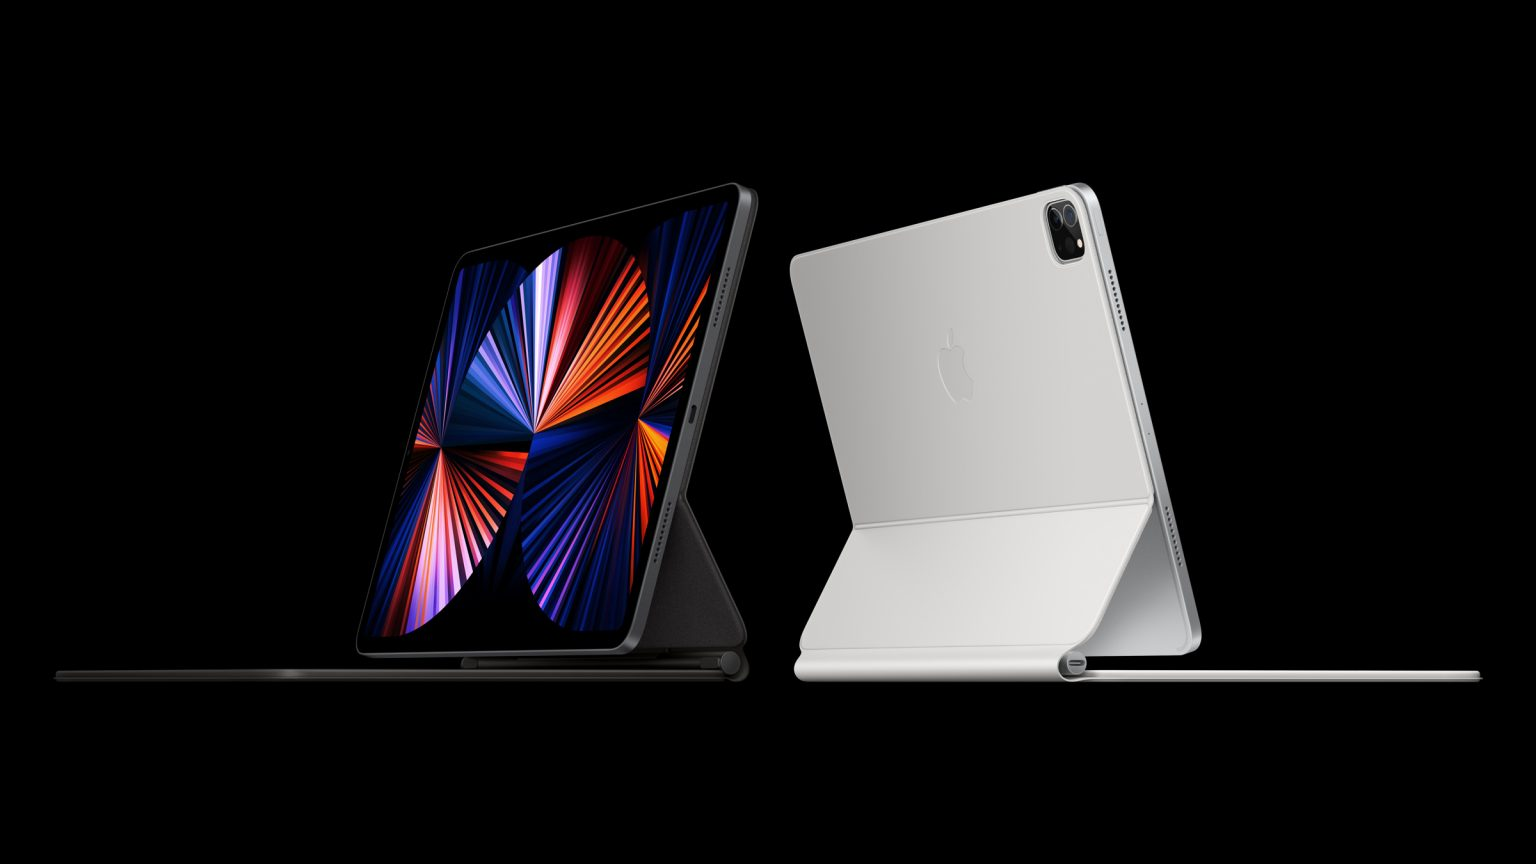 How to preorder a 2021 iPad Pro